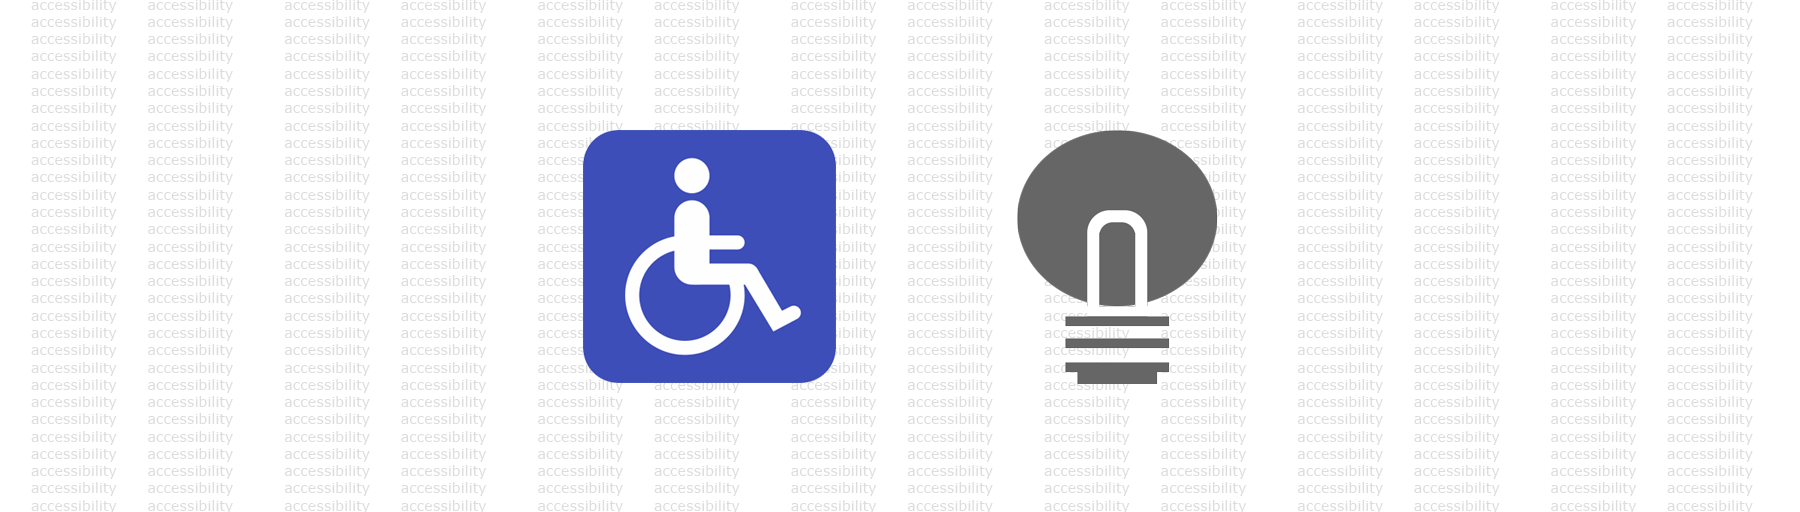 Accessibility tool